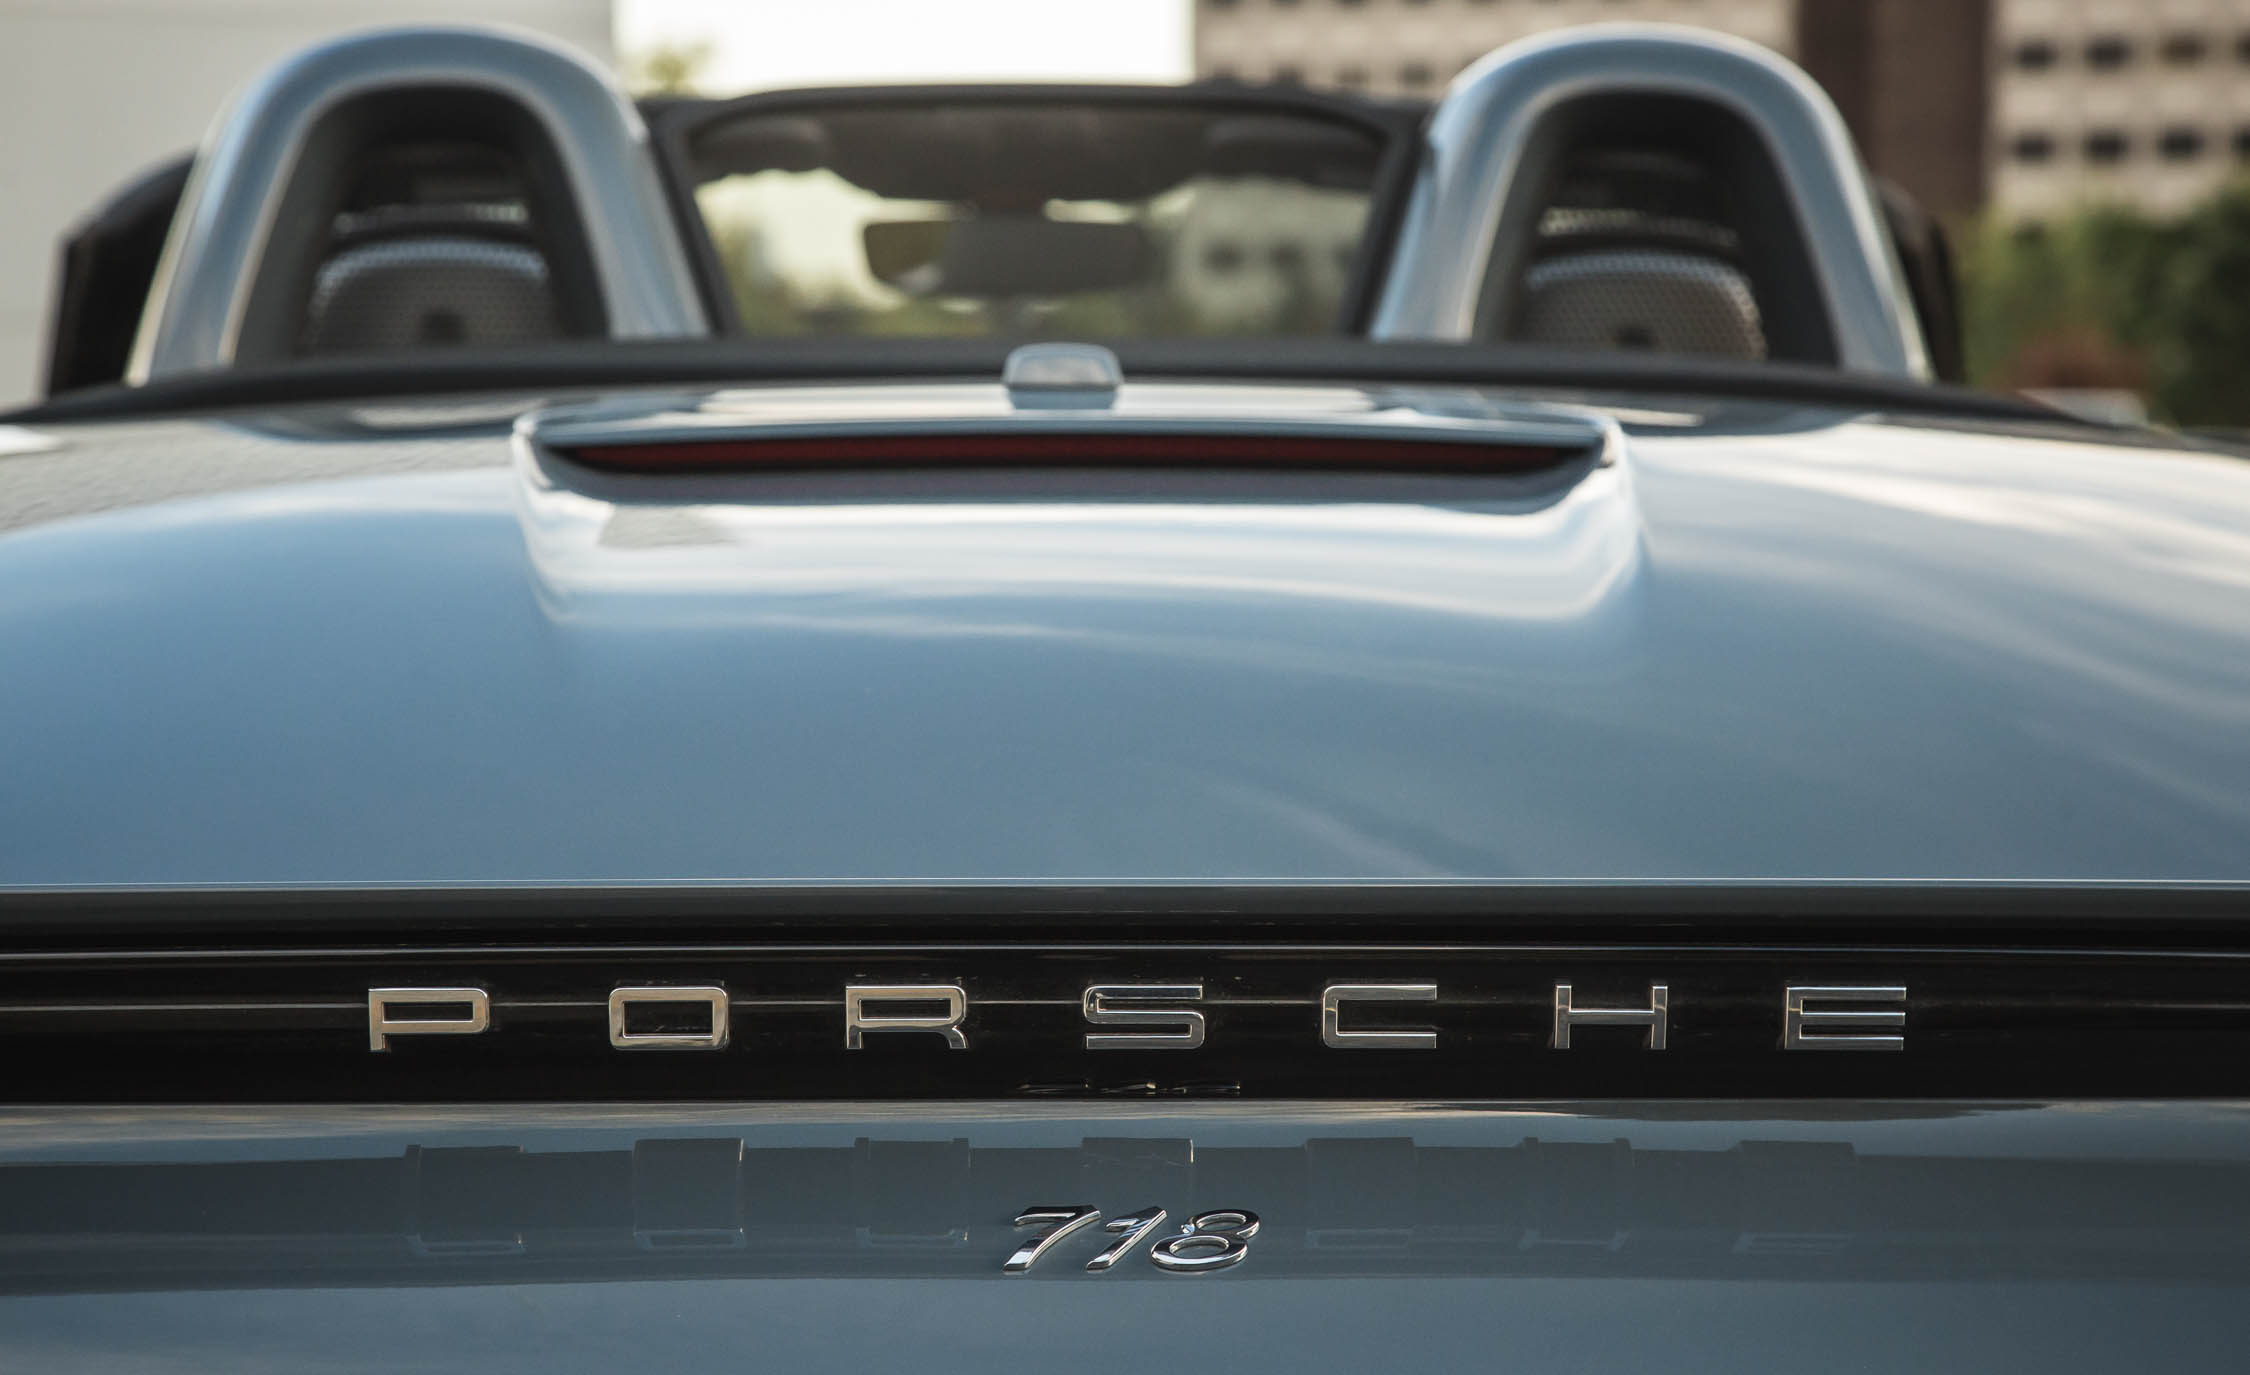 2017 Porsche 718 Boxster S Exterior View Rear Badge (View 28 of 71)